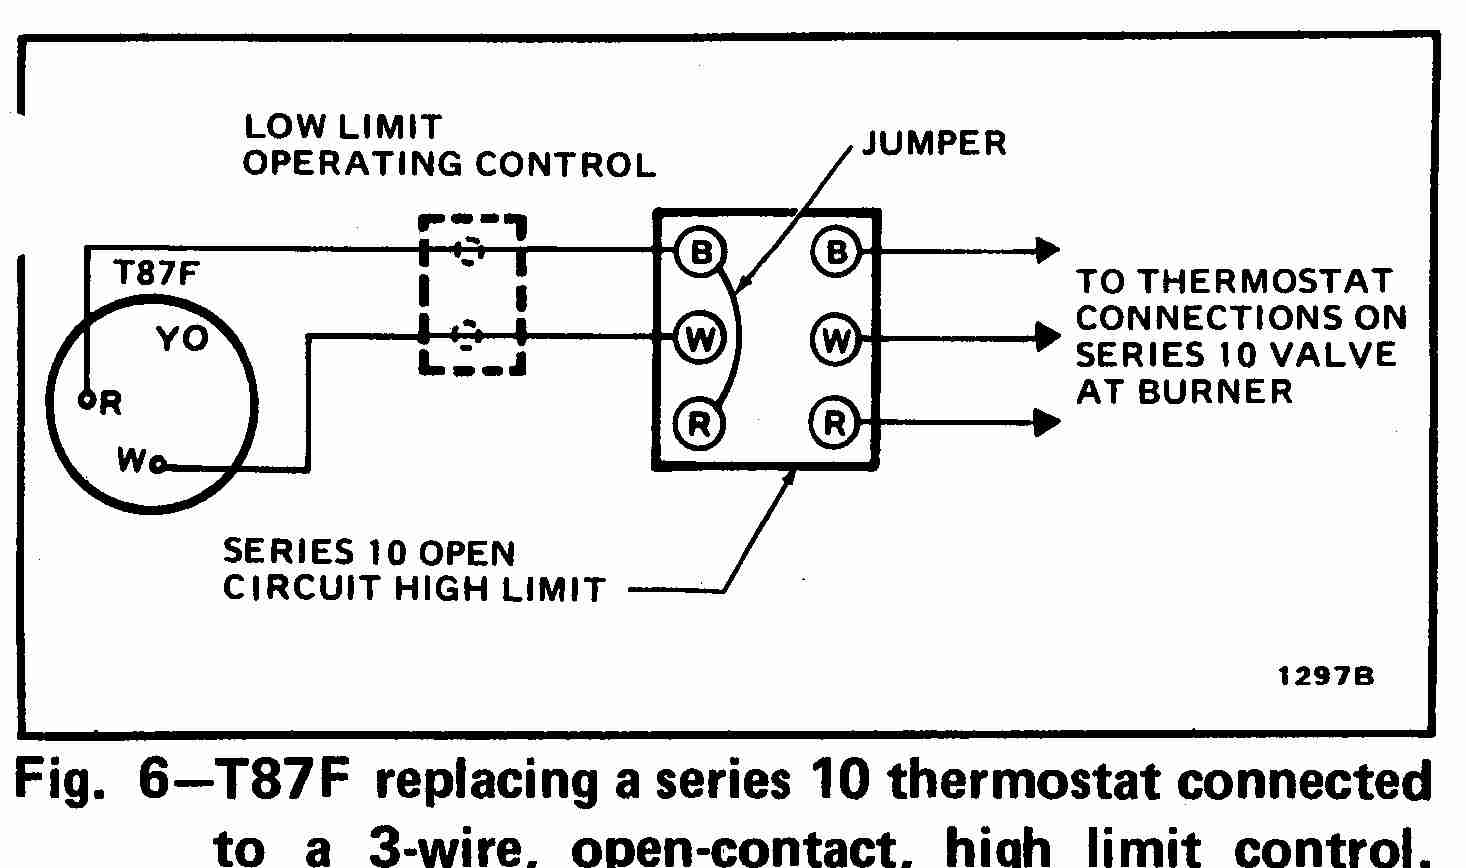 3 Wire Thermostat Diagram - Today Wiring Diagram - Honeywell Thermostat Wiring Diagram 3 Wire